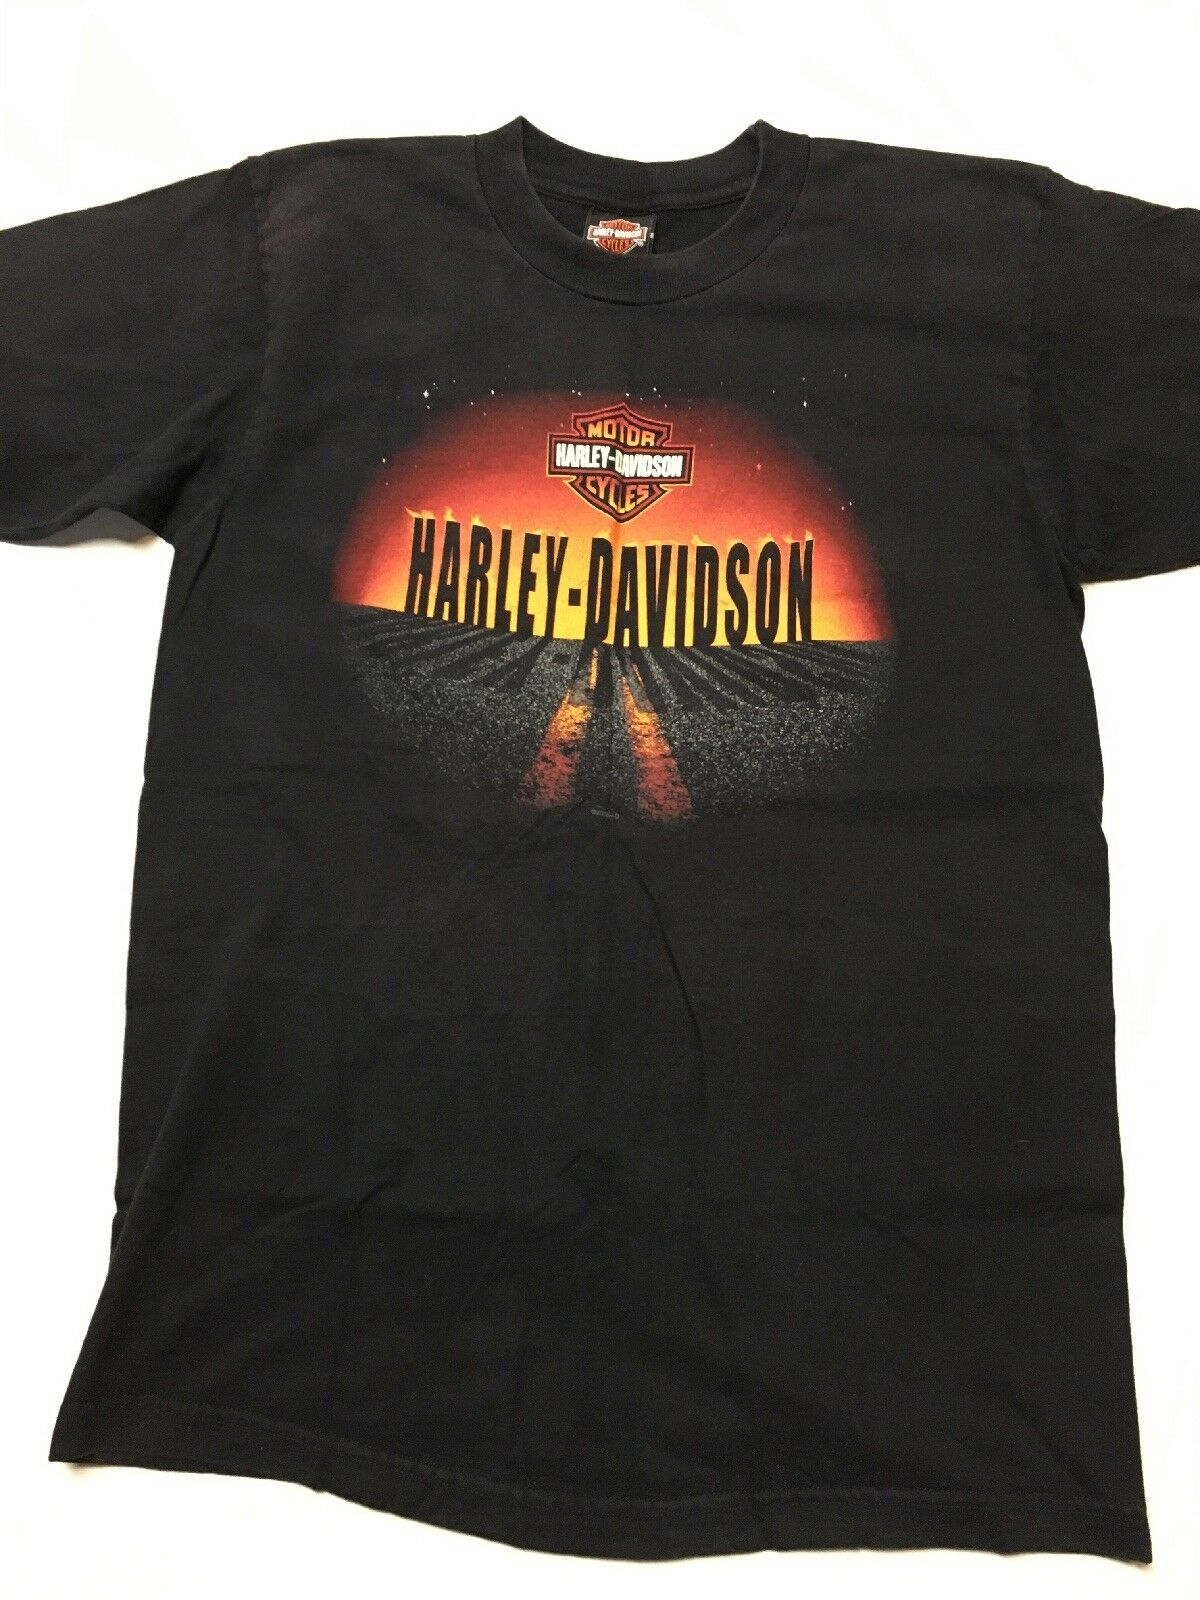 Lot of 4 Harley davidson T-shirts Large motorcycles Harley shirts